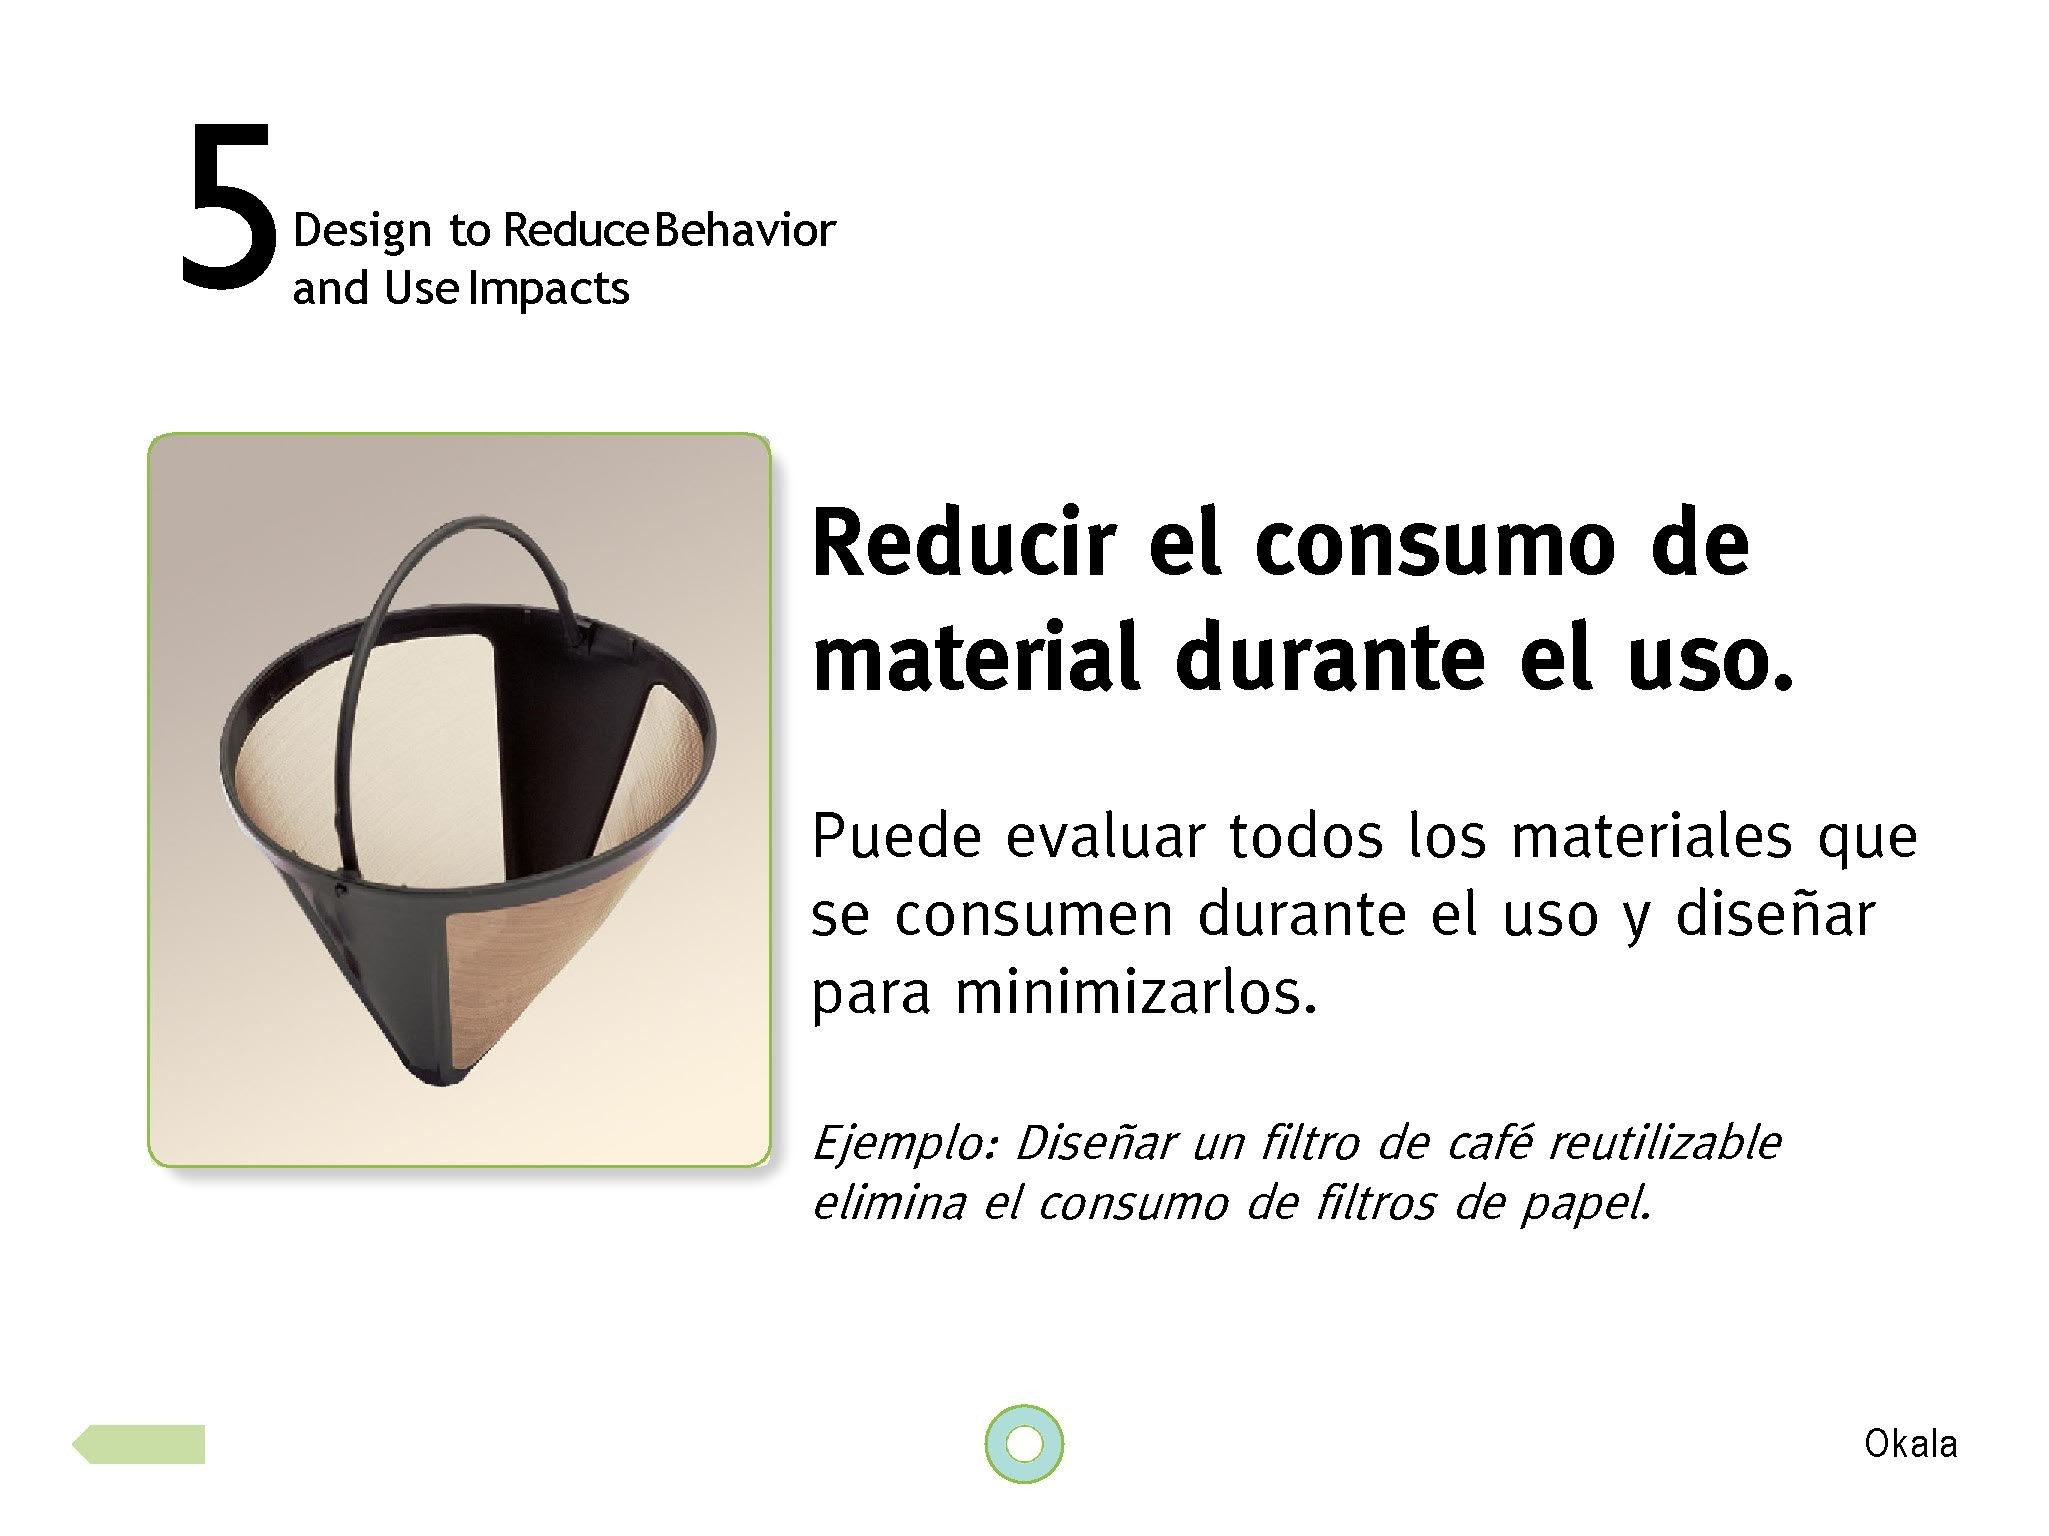 okala-ecodesign-strategy-guide-2012-spanish.new_page_29-1